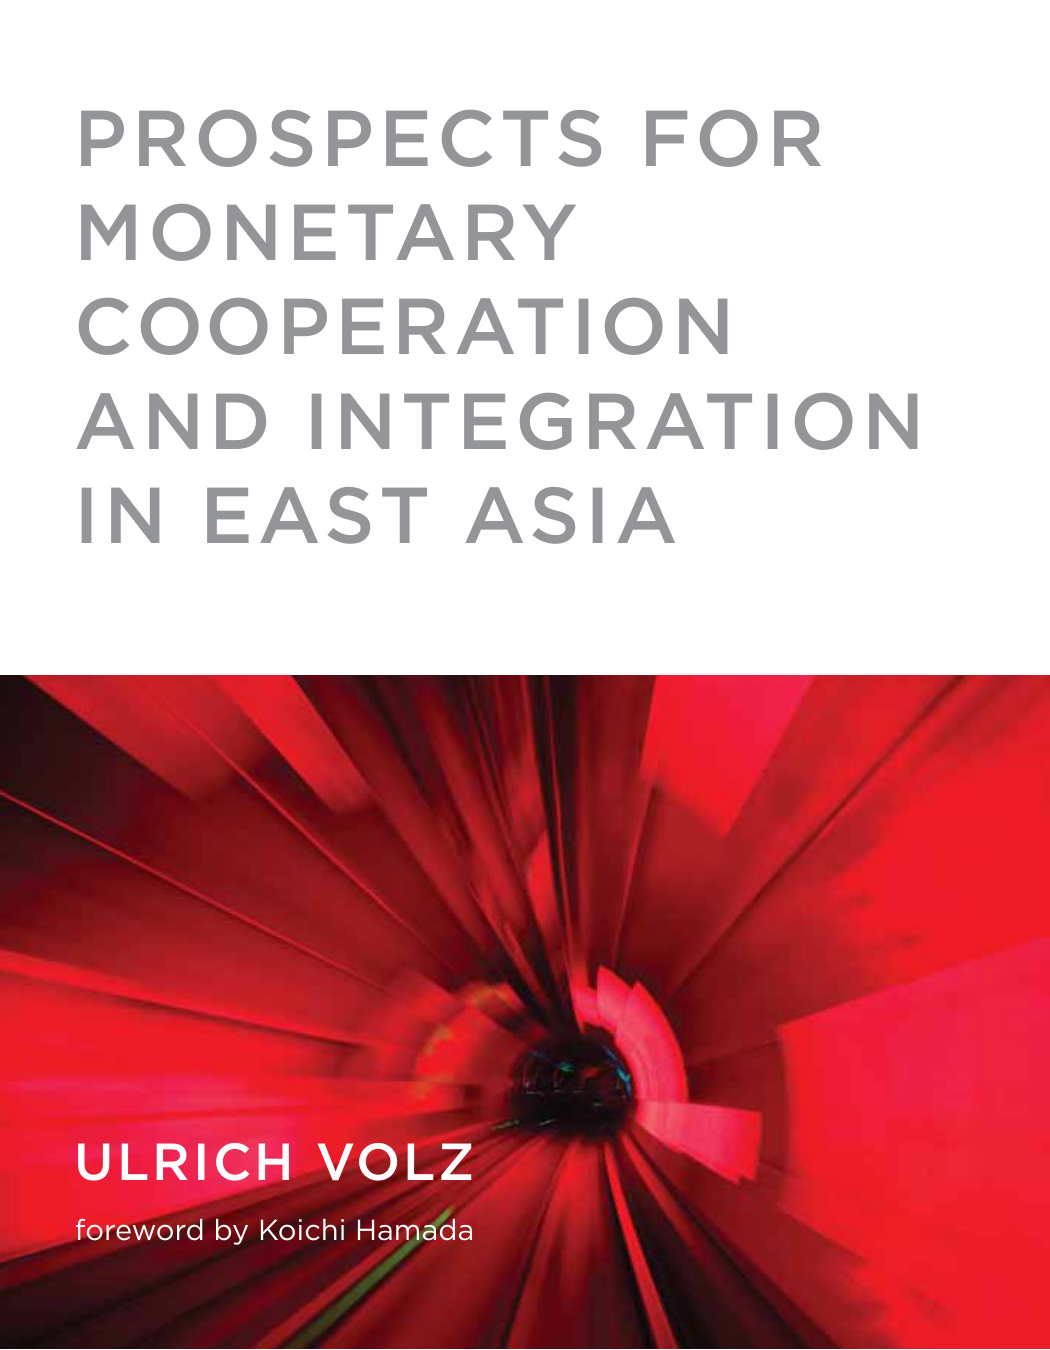 ulrich volz prospects for monetary cooperation and integration in